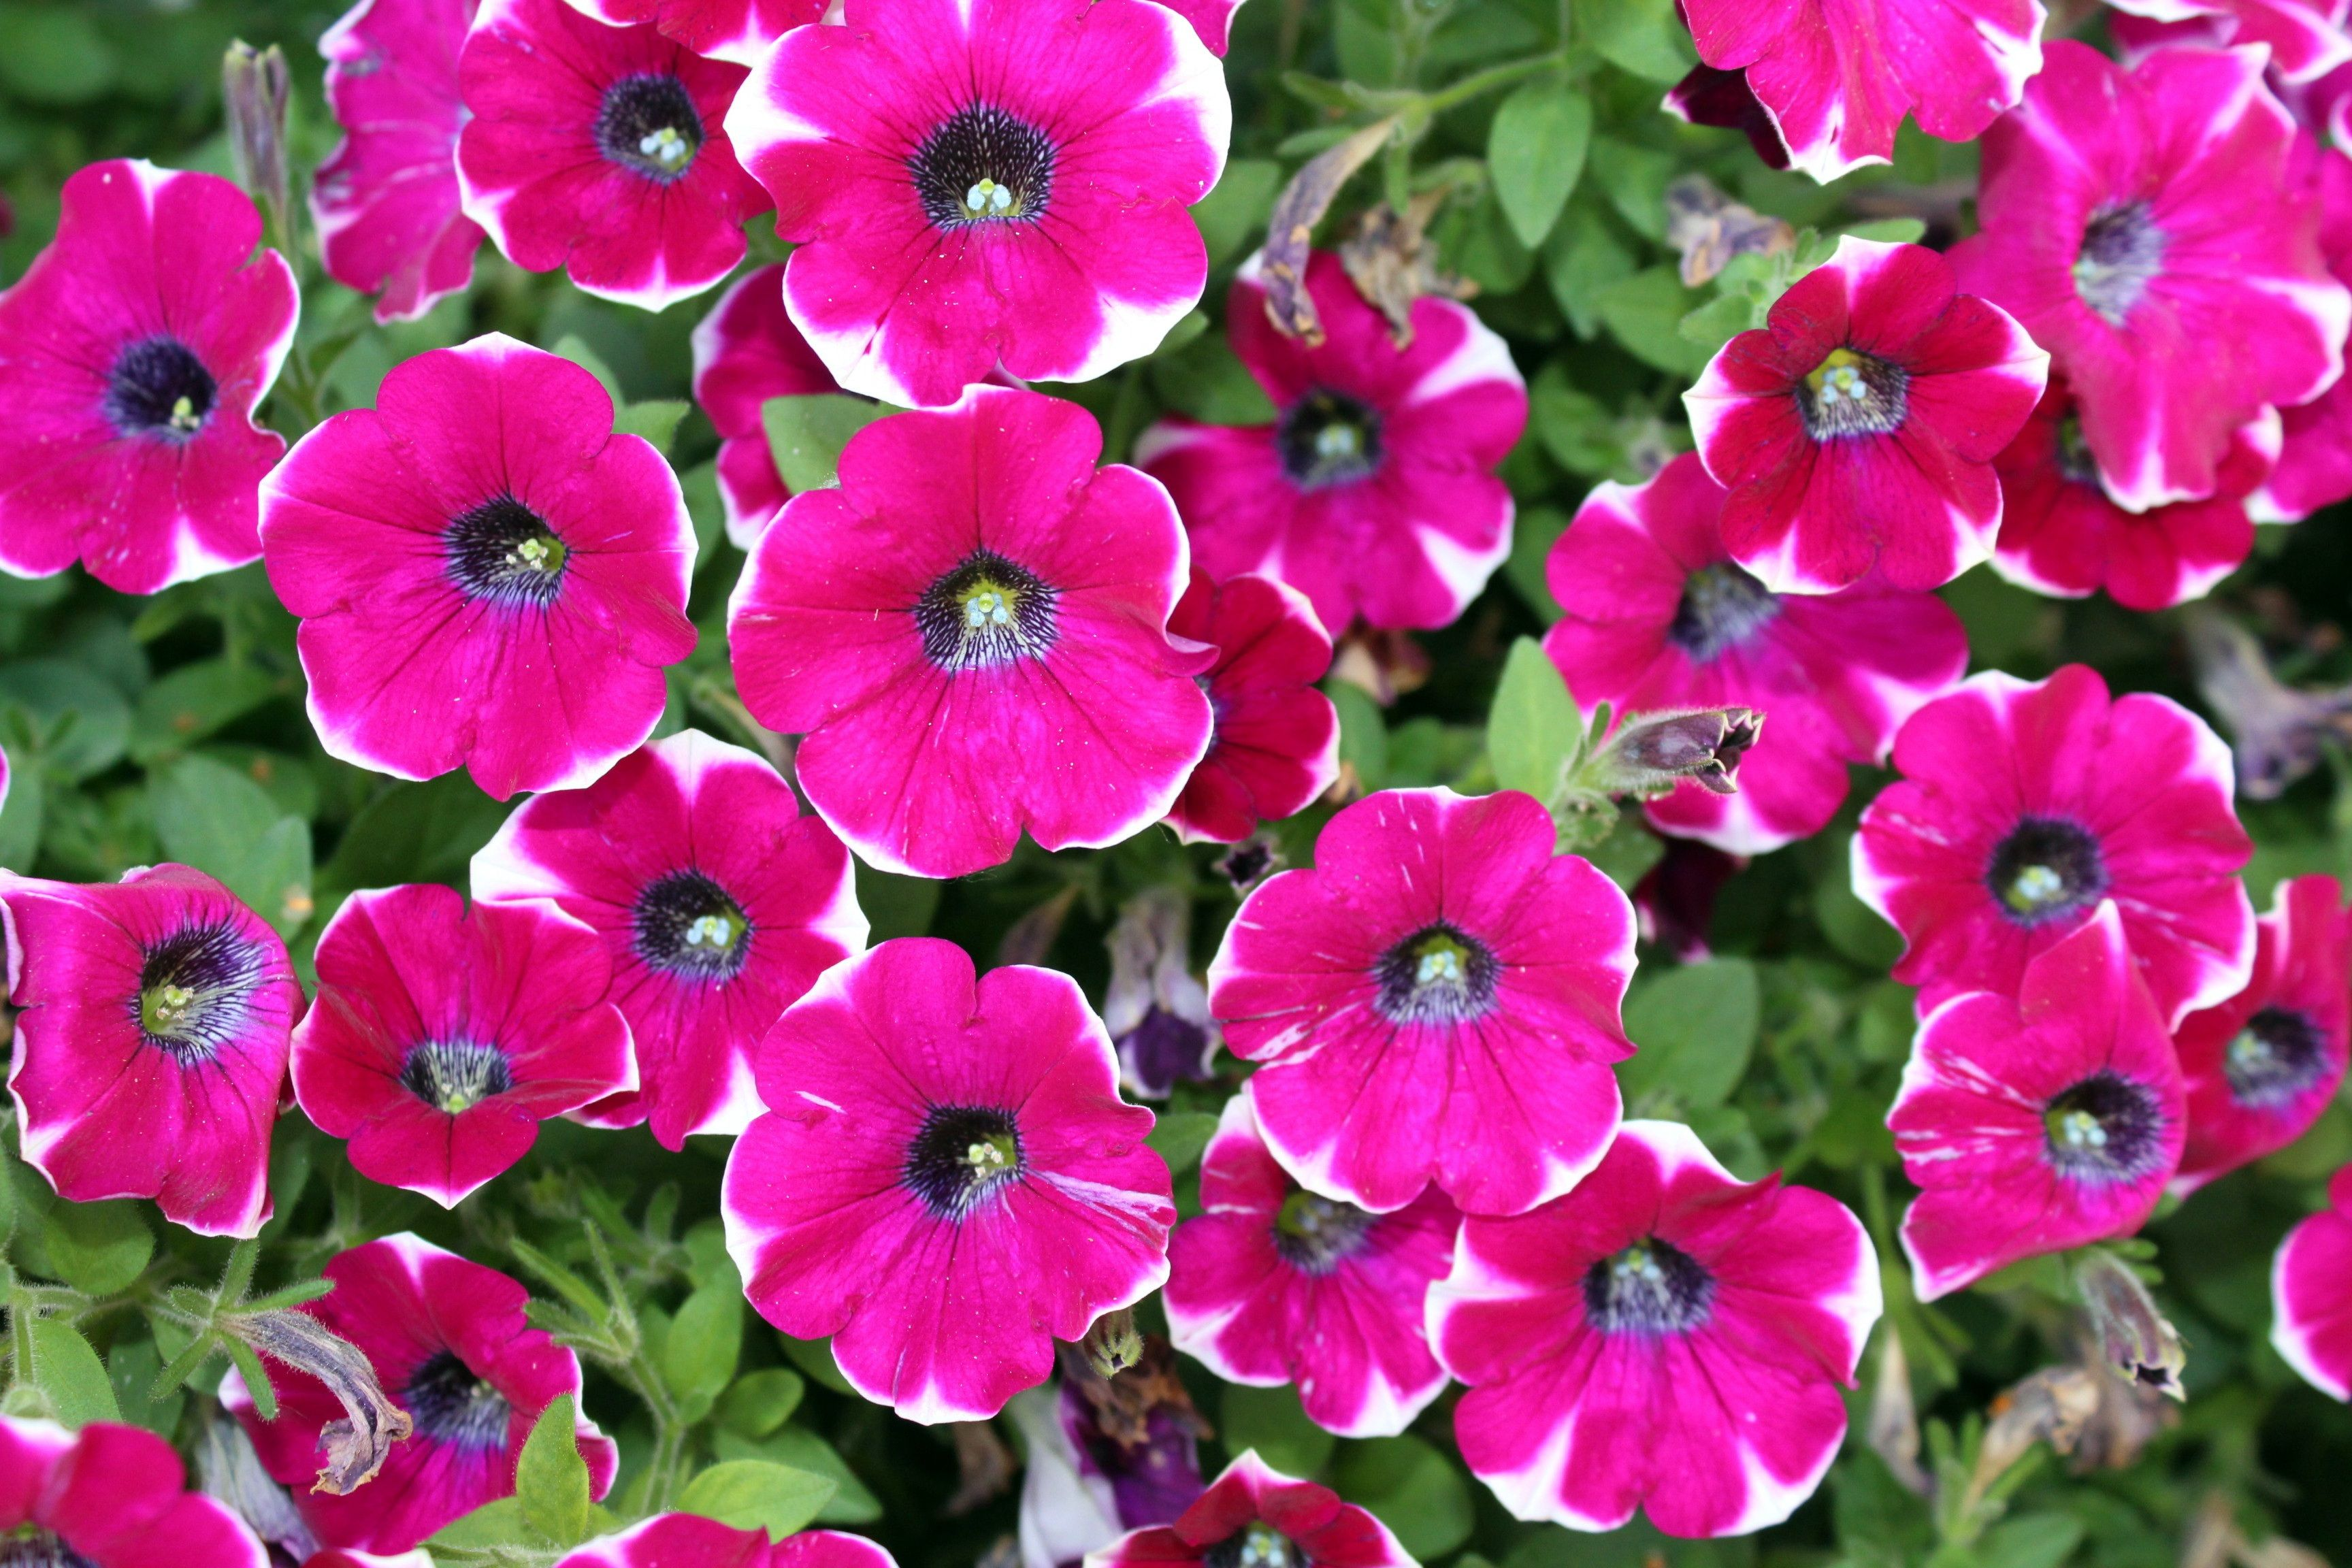 7 Of The Fastest Growing Flower Seeds For Your Garden This Summer